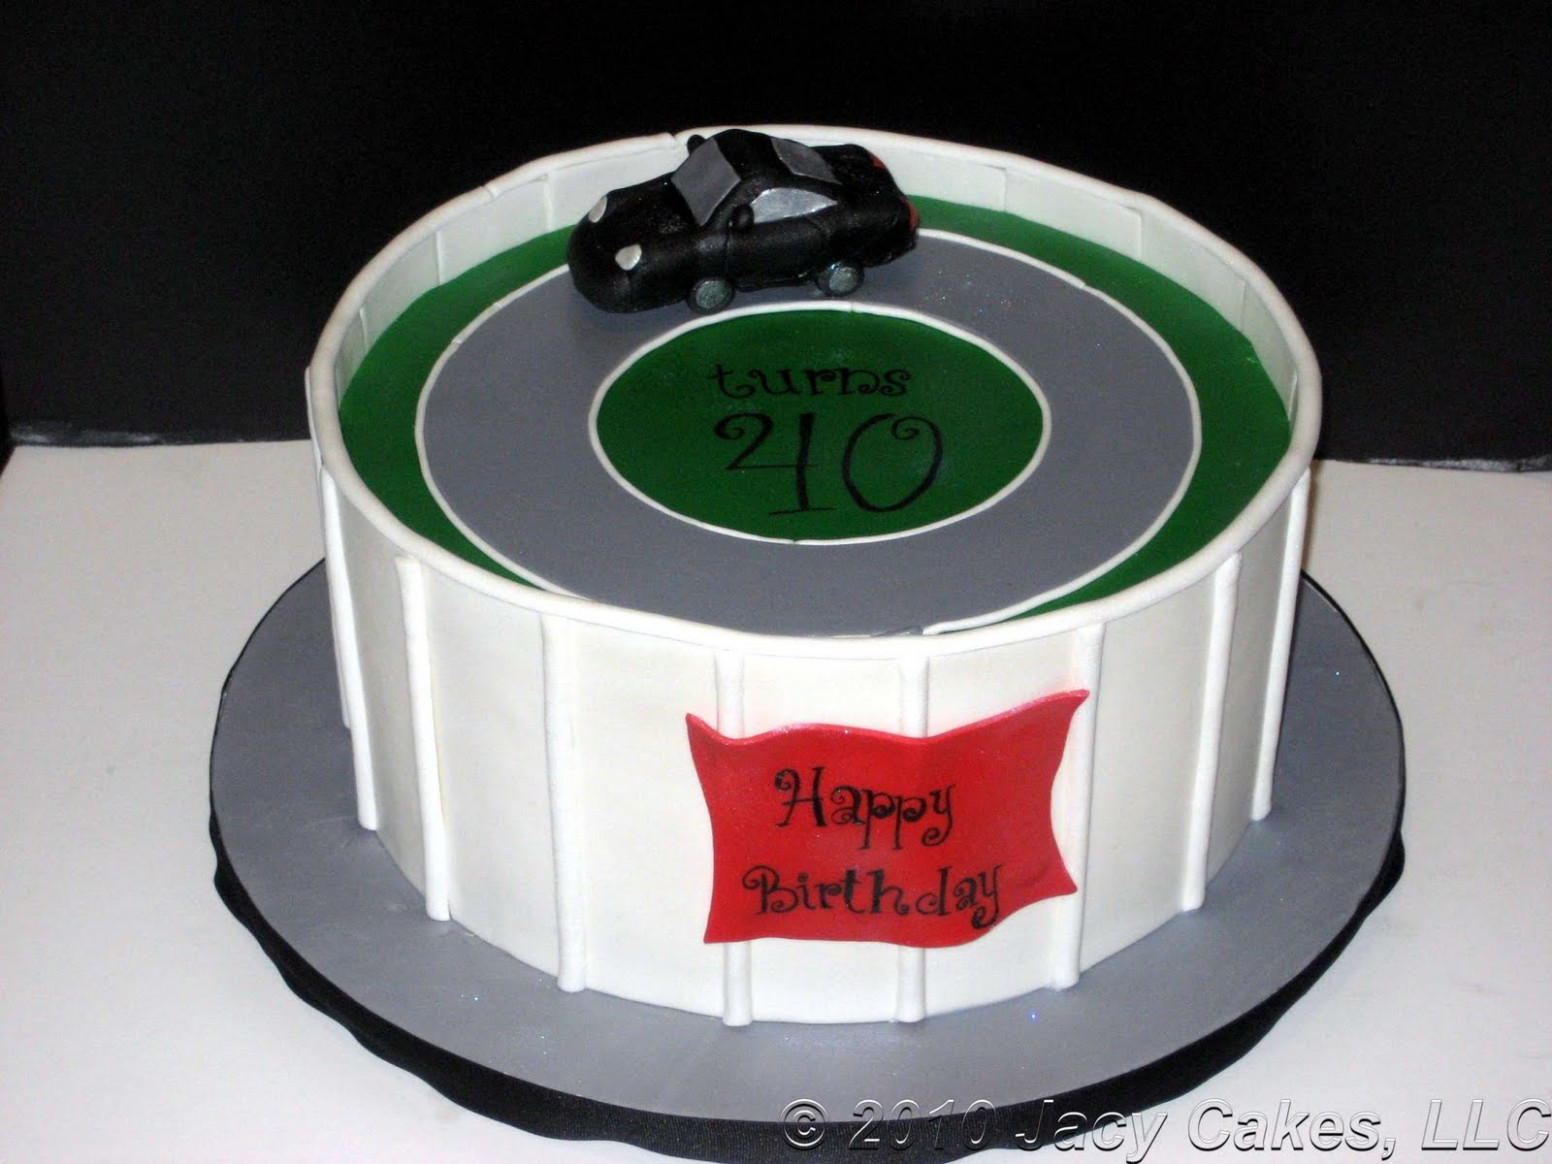 News from Jacy Cakes: Porsche Cayman Birthday